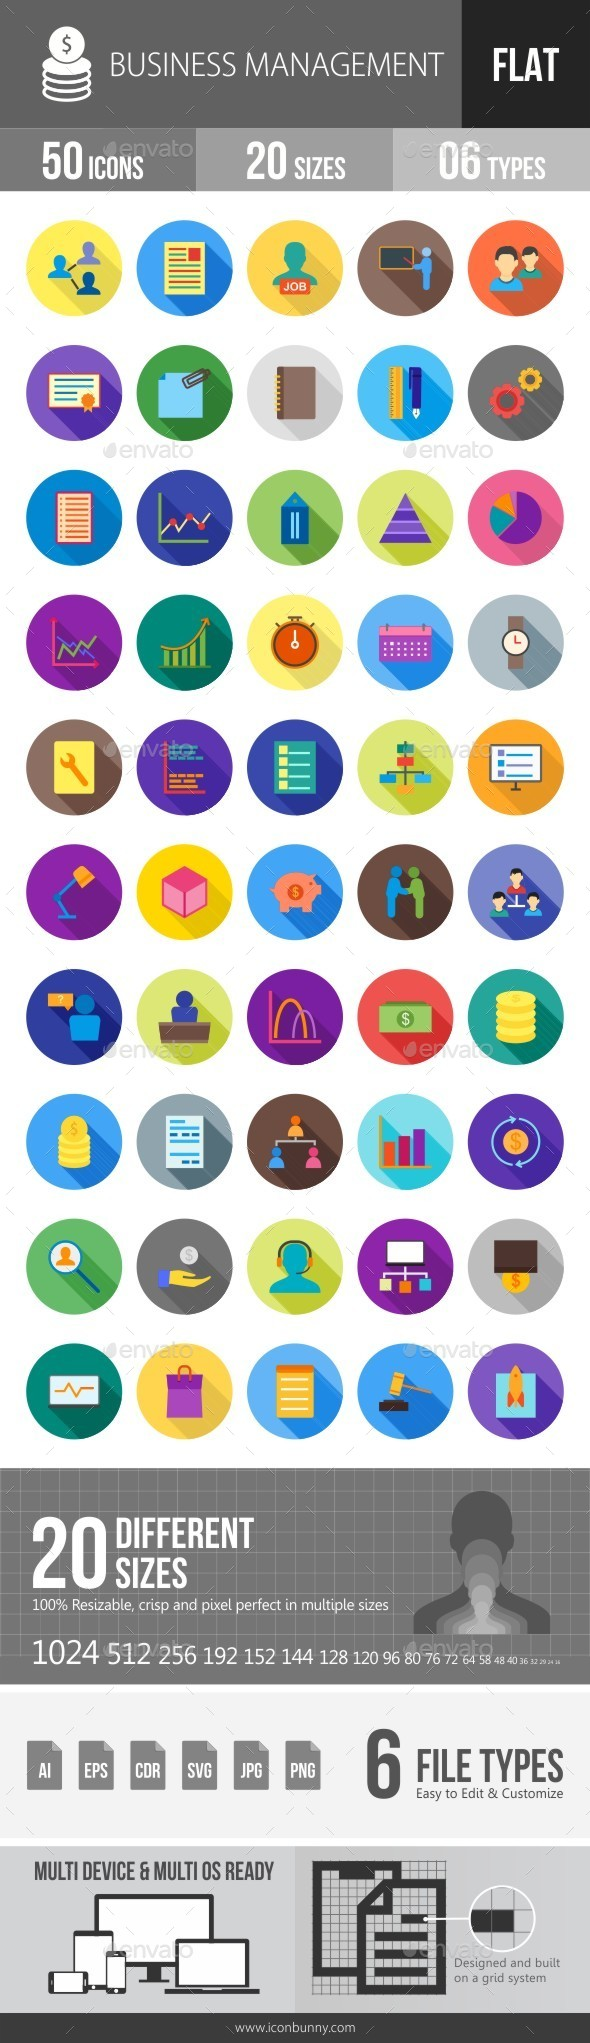 Business Management Flat Shadowed Icons - Icons